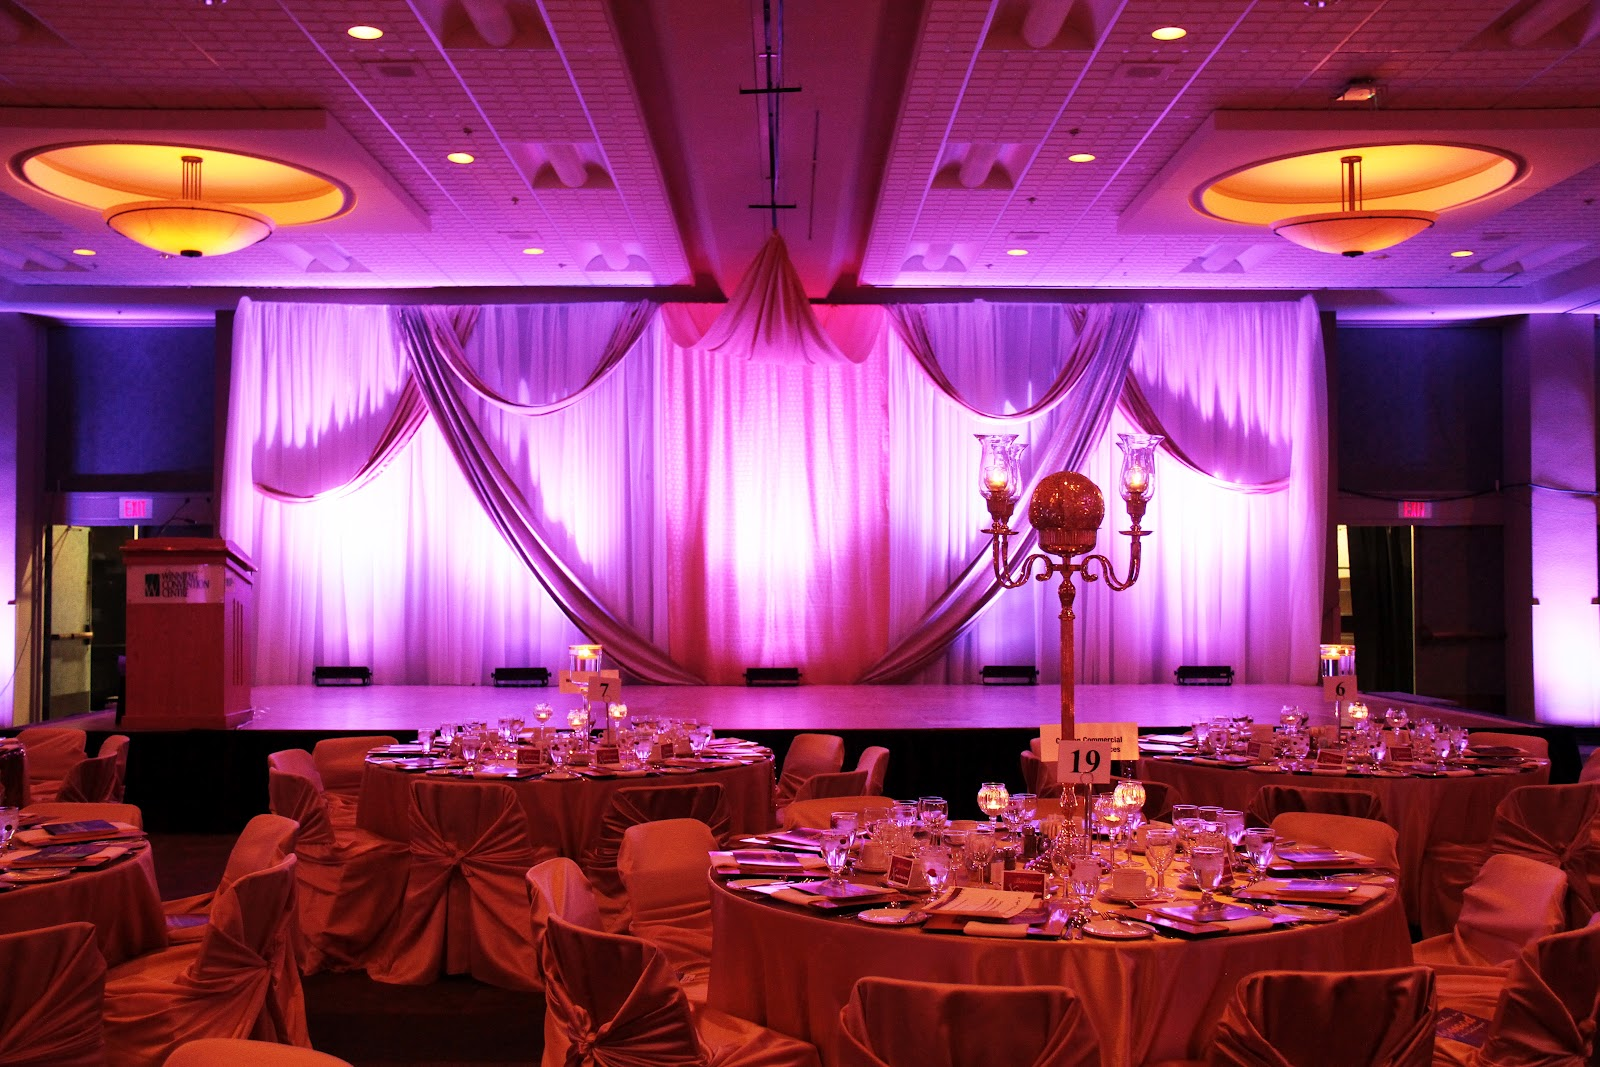 Our Corporate Event Services Includes